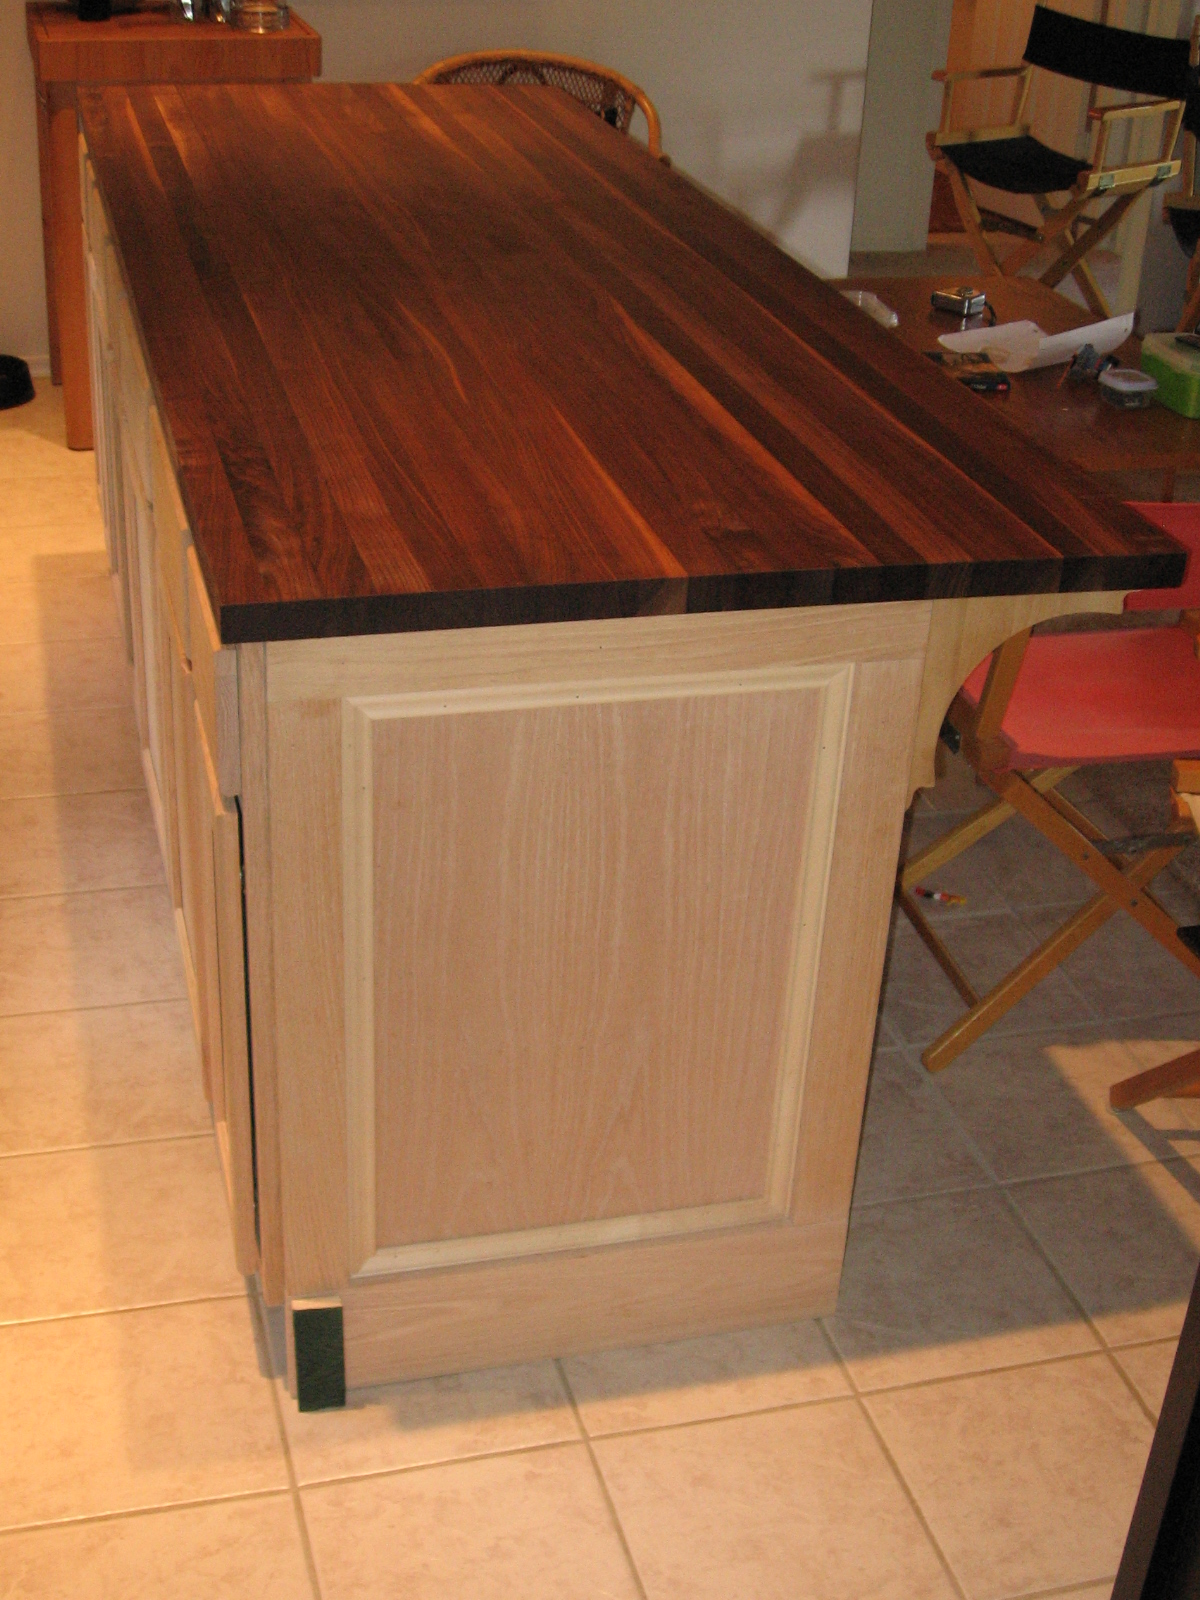 Dusty Coyote DIY Kitchen Island - How to build a kitchen island with cabinets